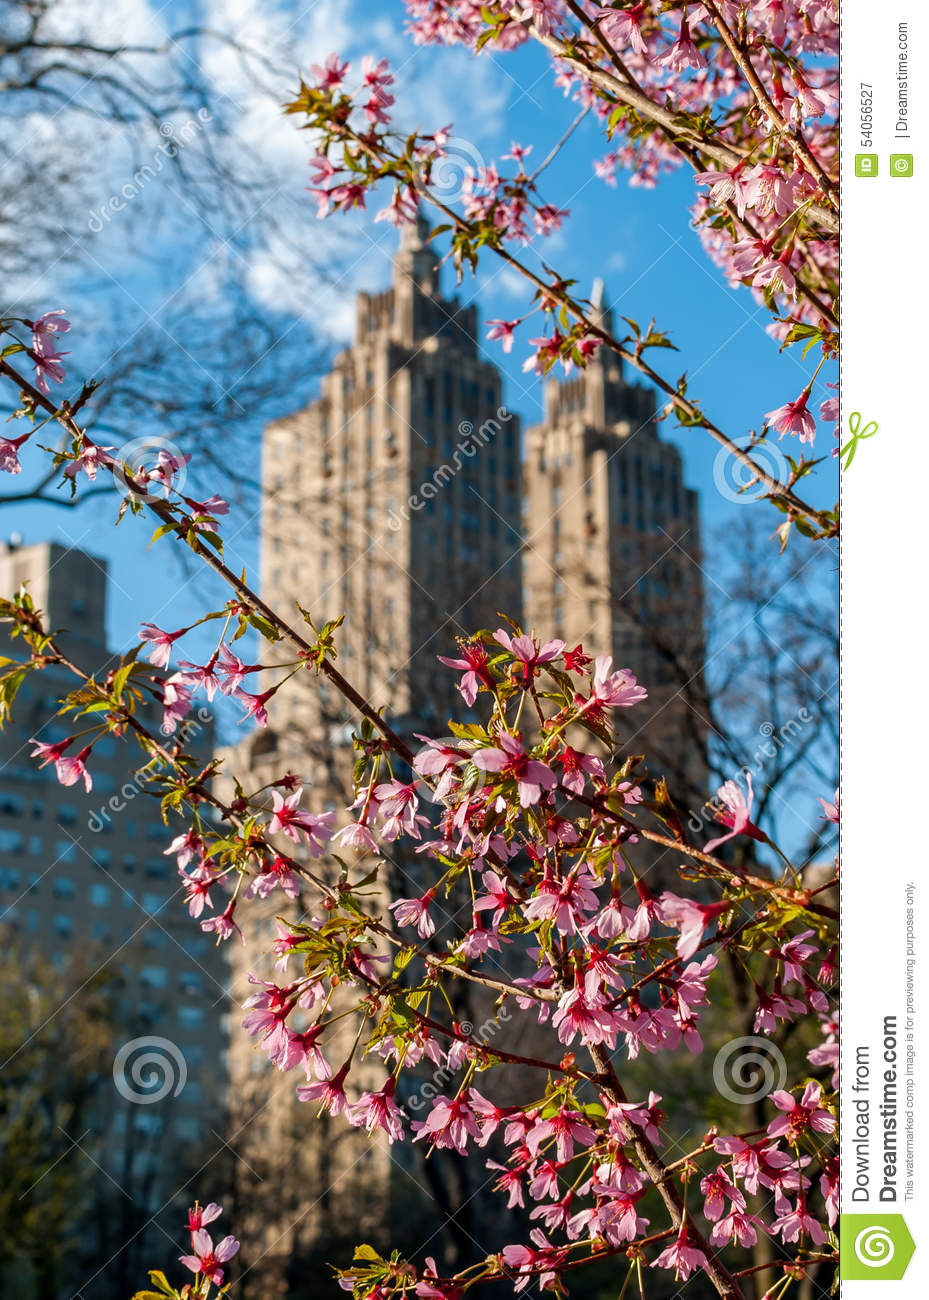 Spring blossoms with urban background